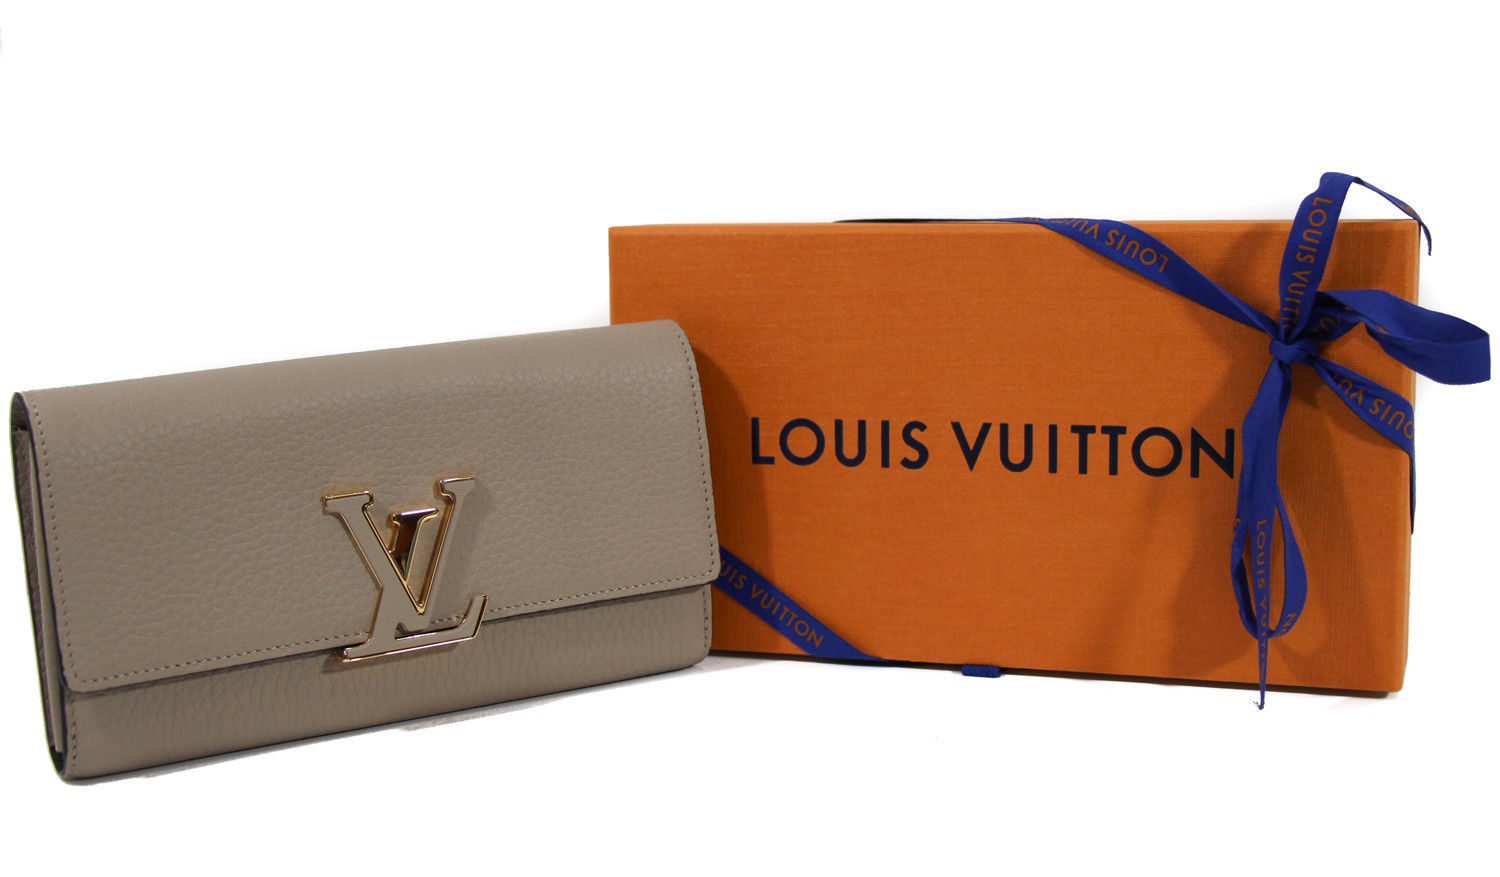 4471d737cd26 Nib Louis Vuitton Capucines Small Leather and 50 similar items. 57